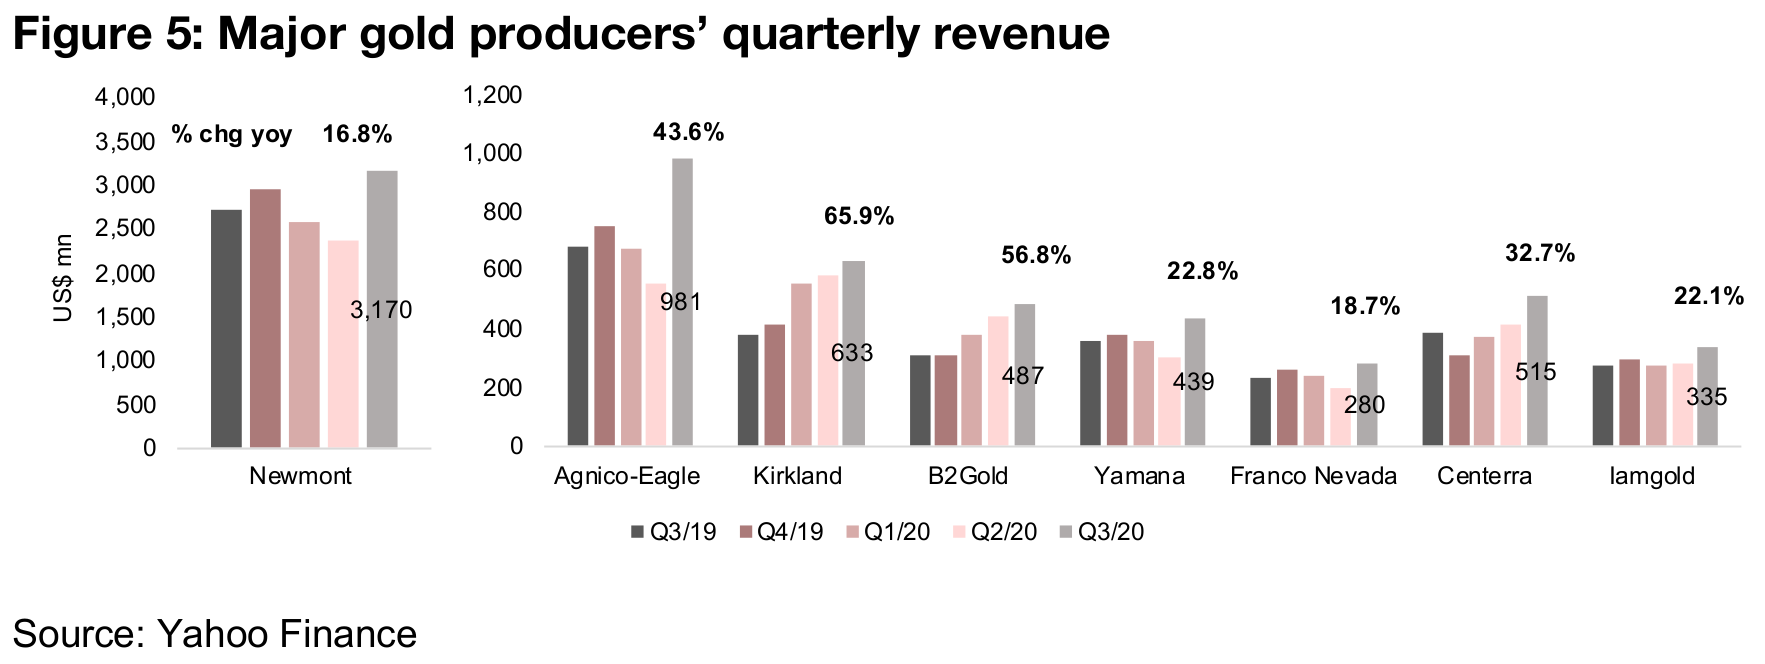 Strong Q3/20 for producers with most majors already reporting